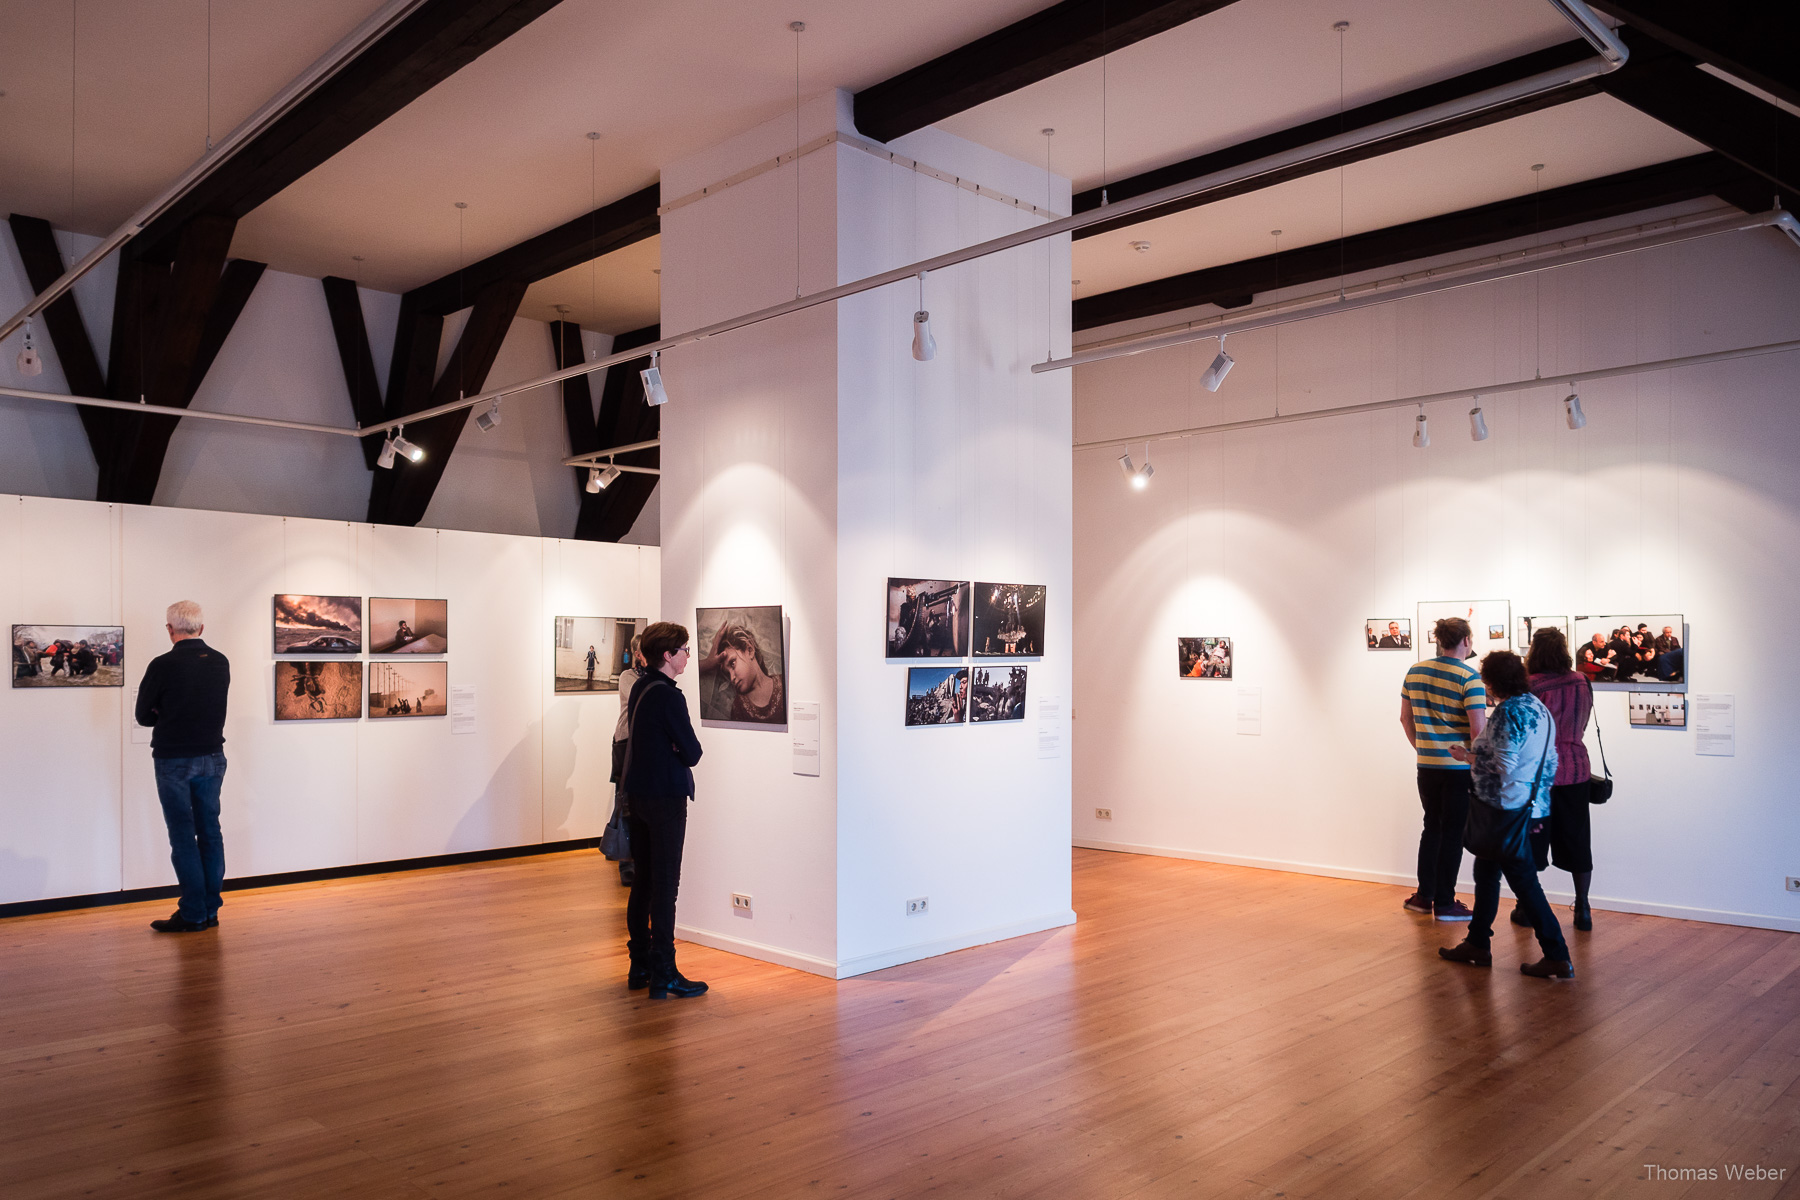 World Press Photo 2017 Ausstellung im Schloss Oldenburg, Fotograf Thomas Weber aus Oldenburg